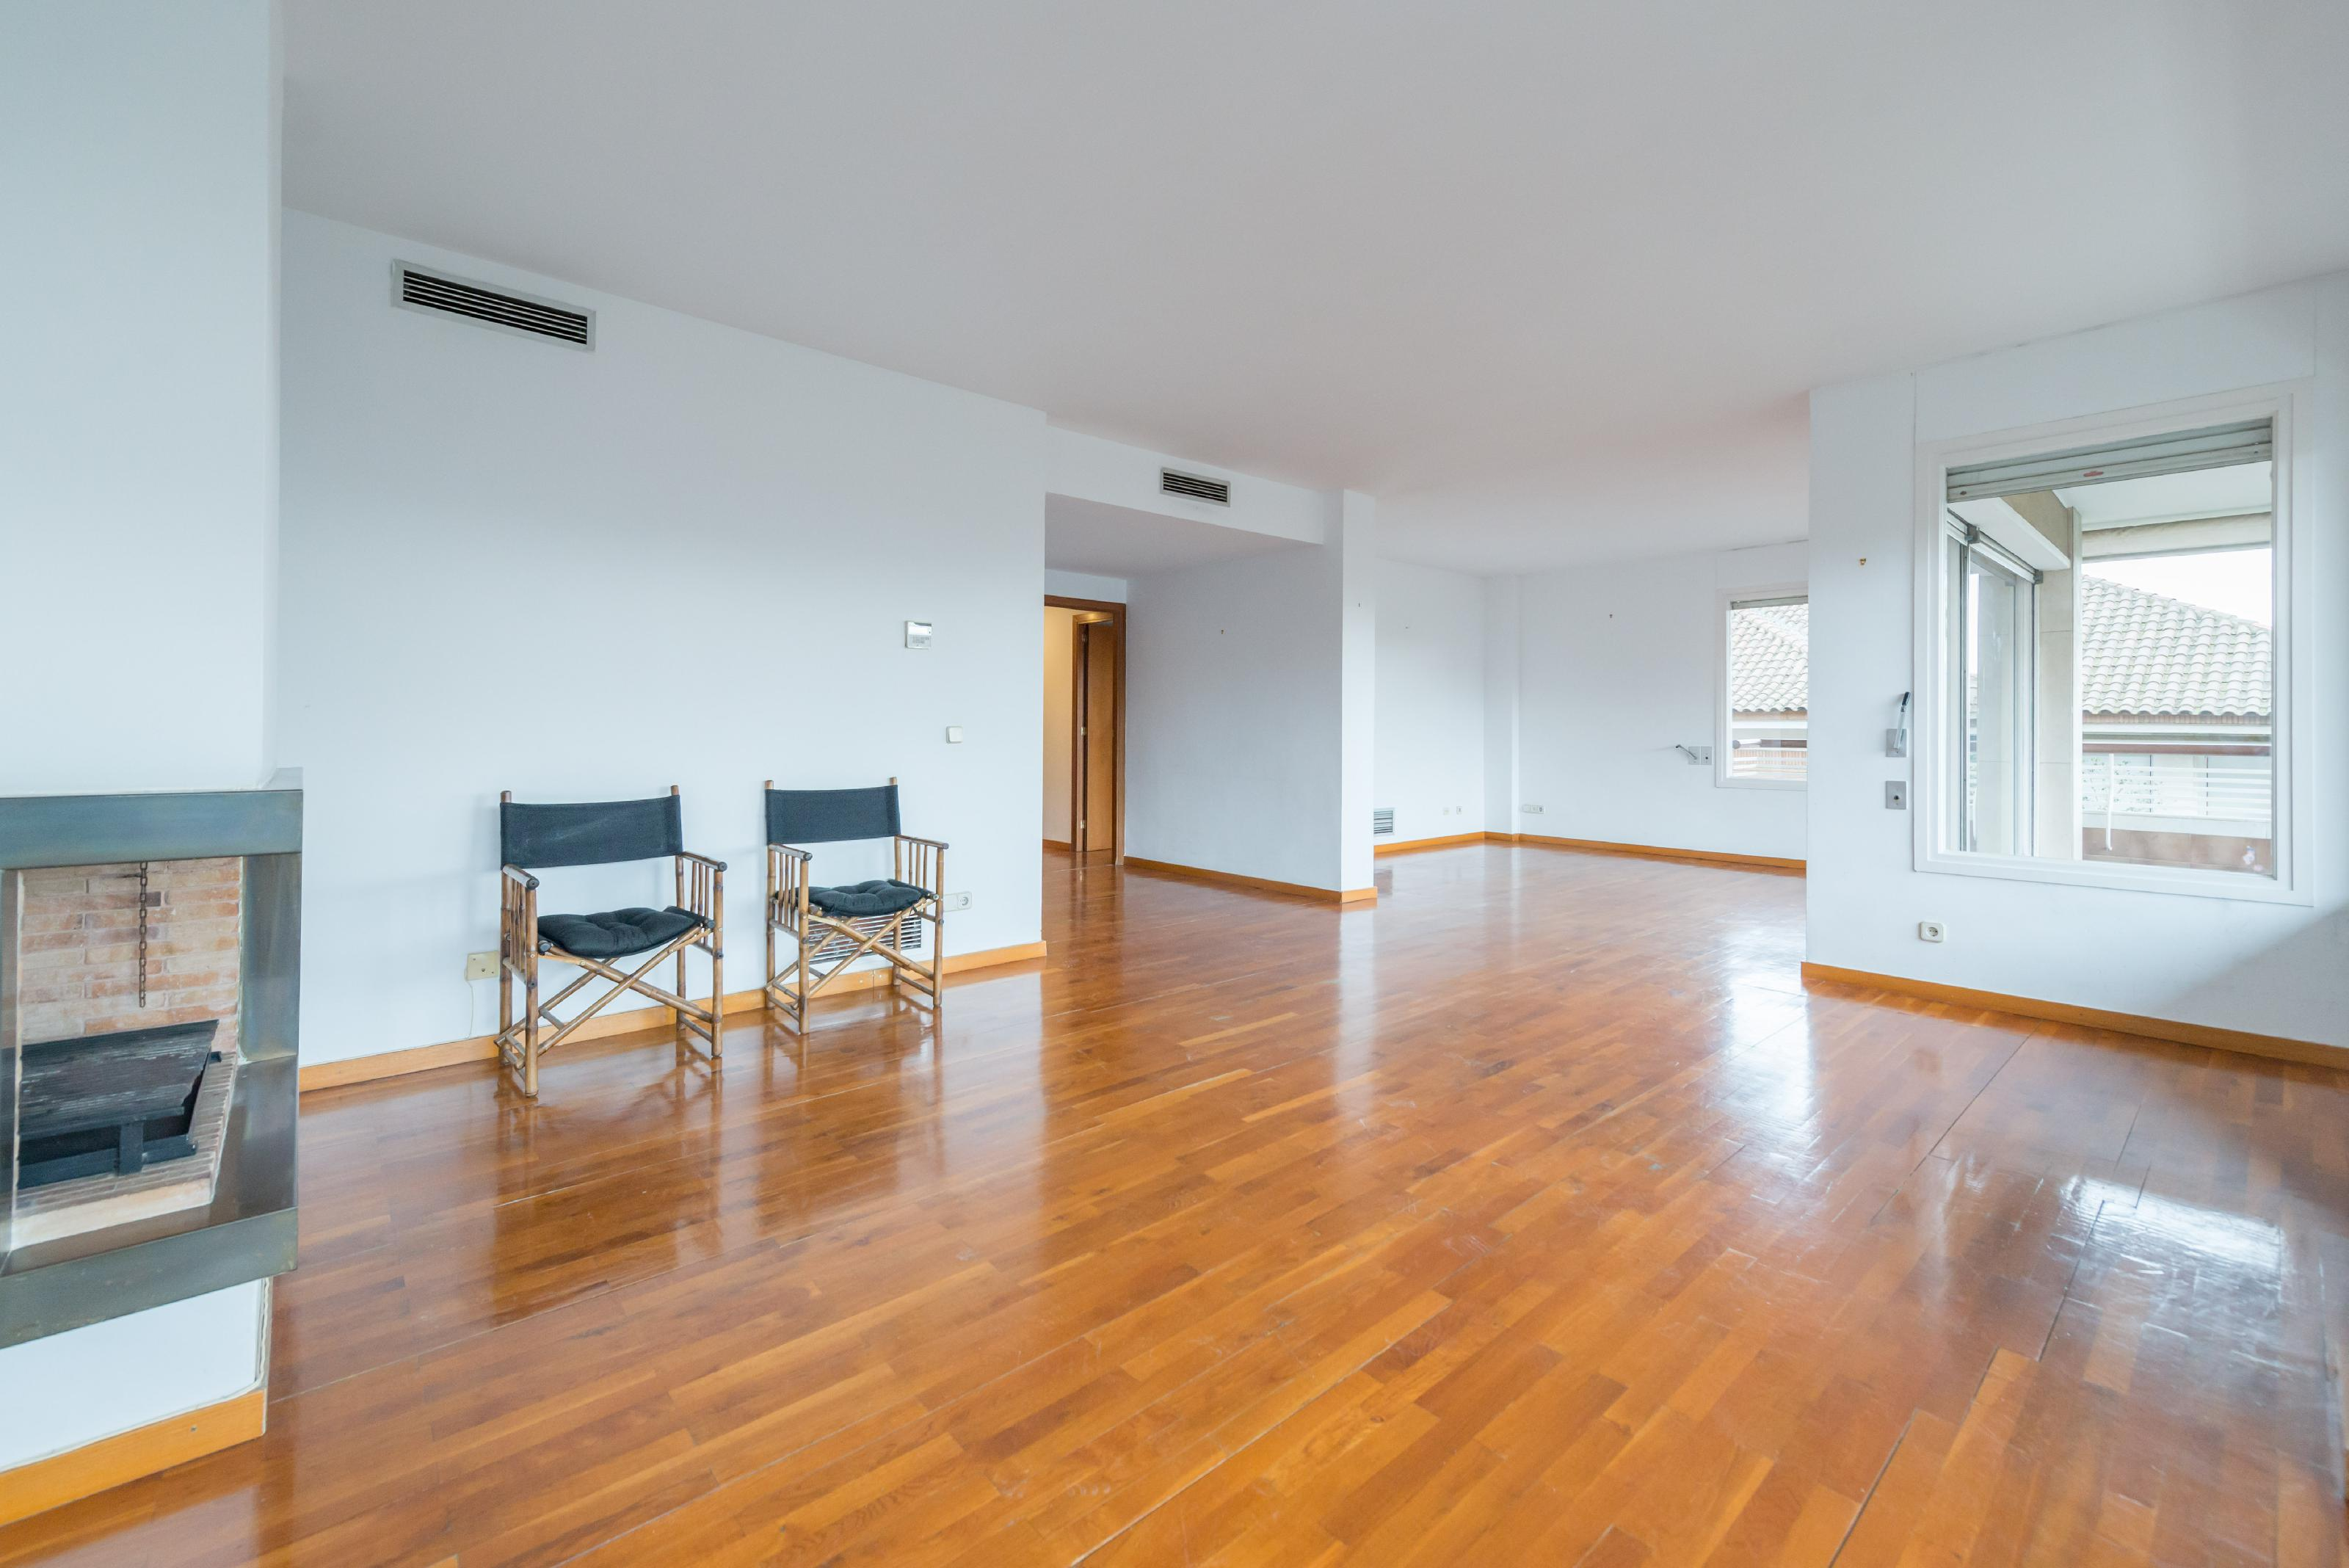 245495 Penthouse for sale in Les Corts, Pedralbes 4